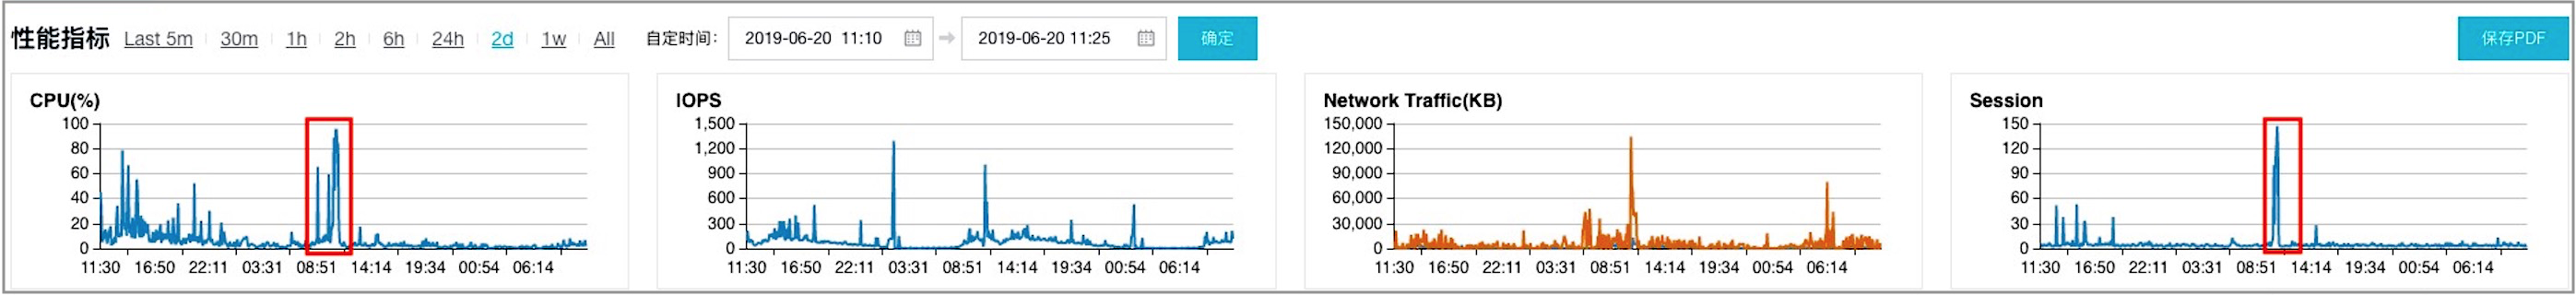 PerformanceInsights_性能指标.png